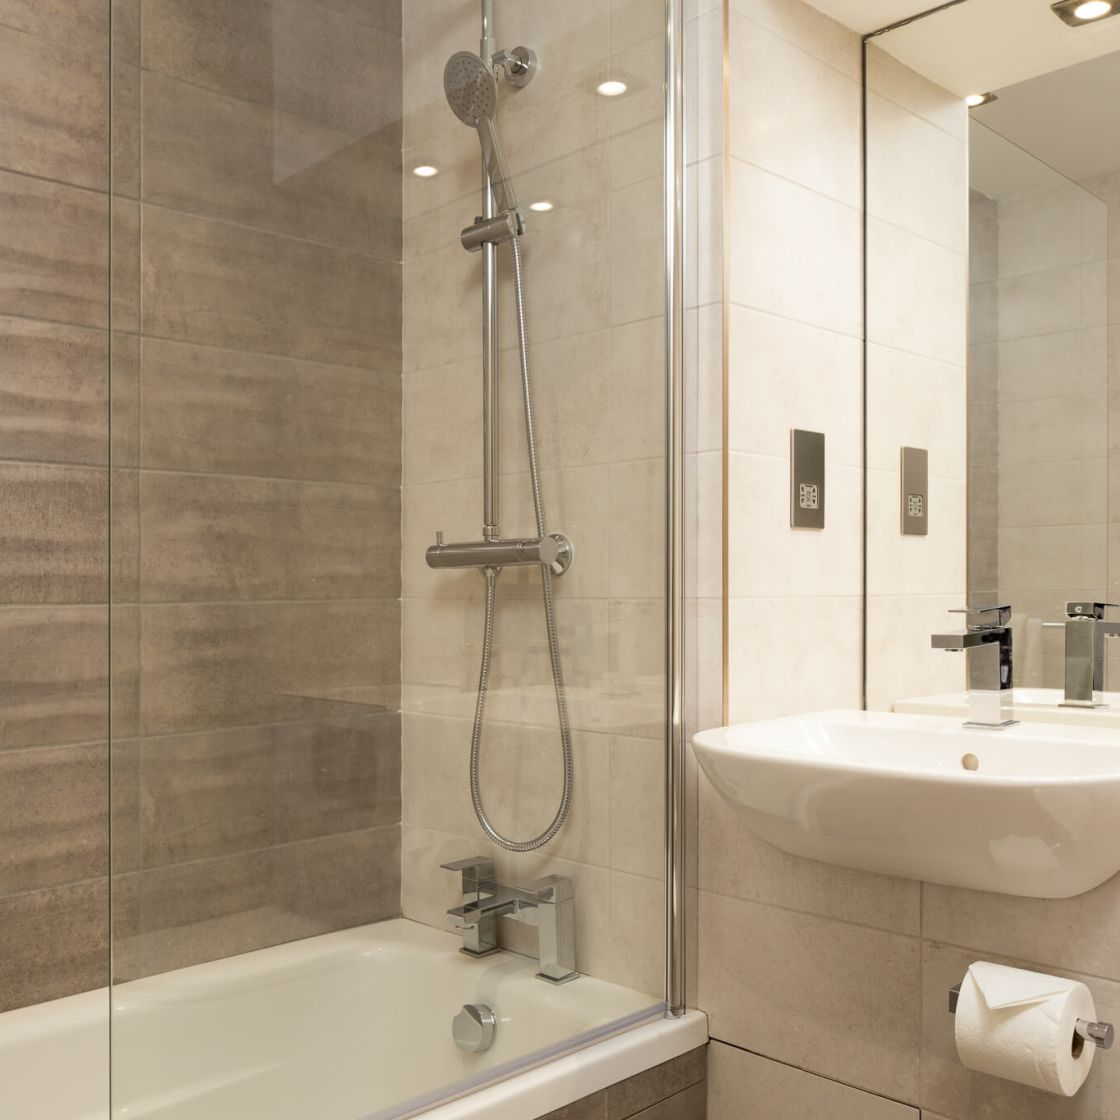 Neo Studio Student Apartment in London. En-suite bathroom with rain shower. IconInc @ Roomzzz